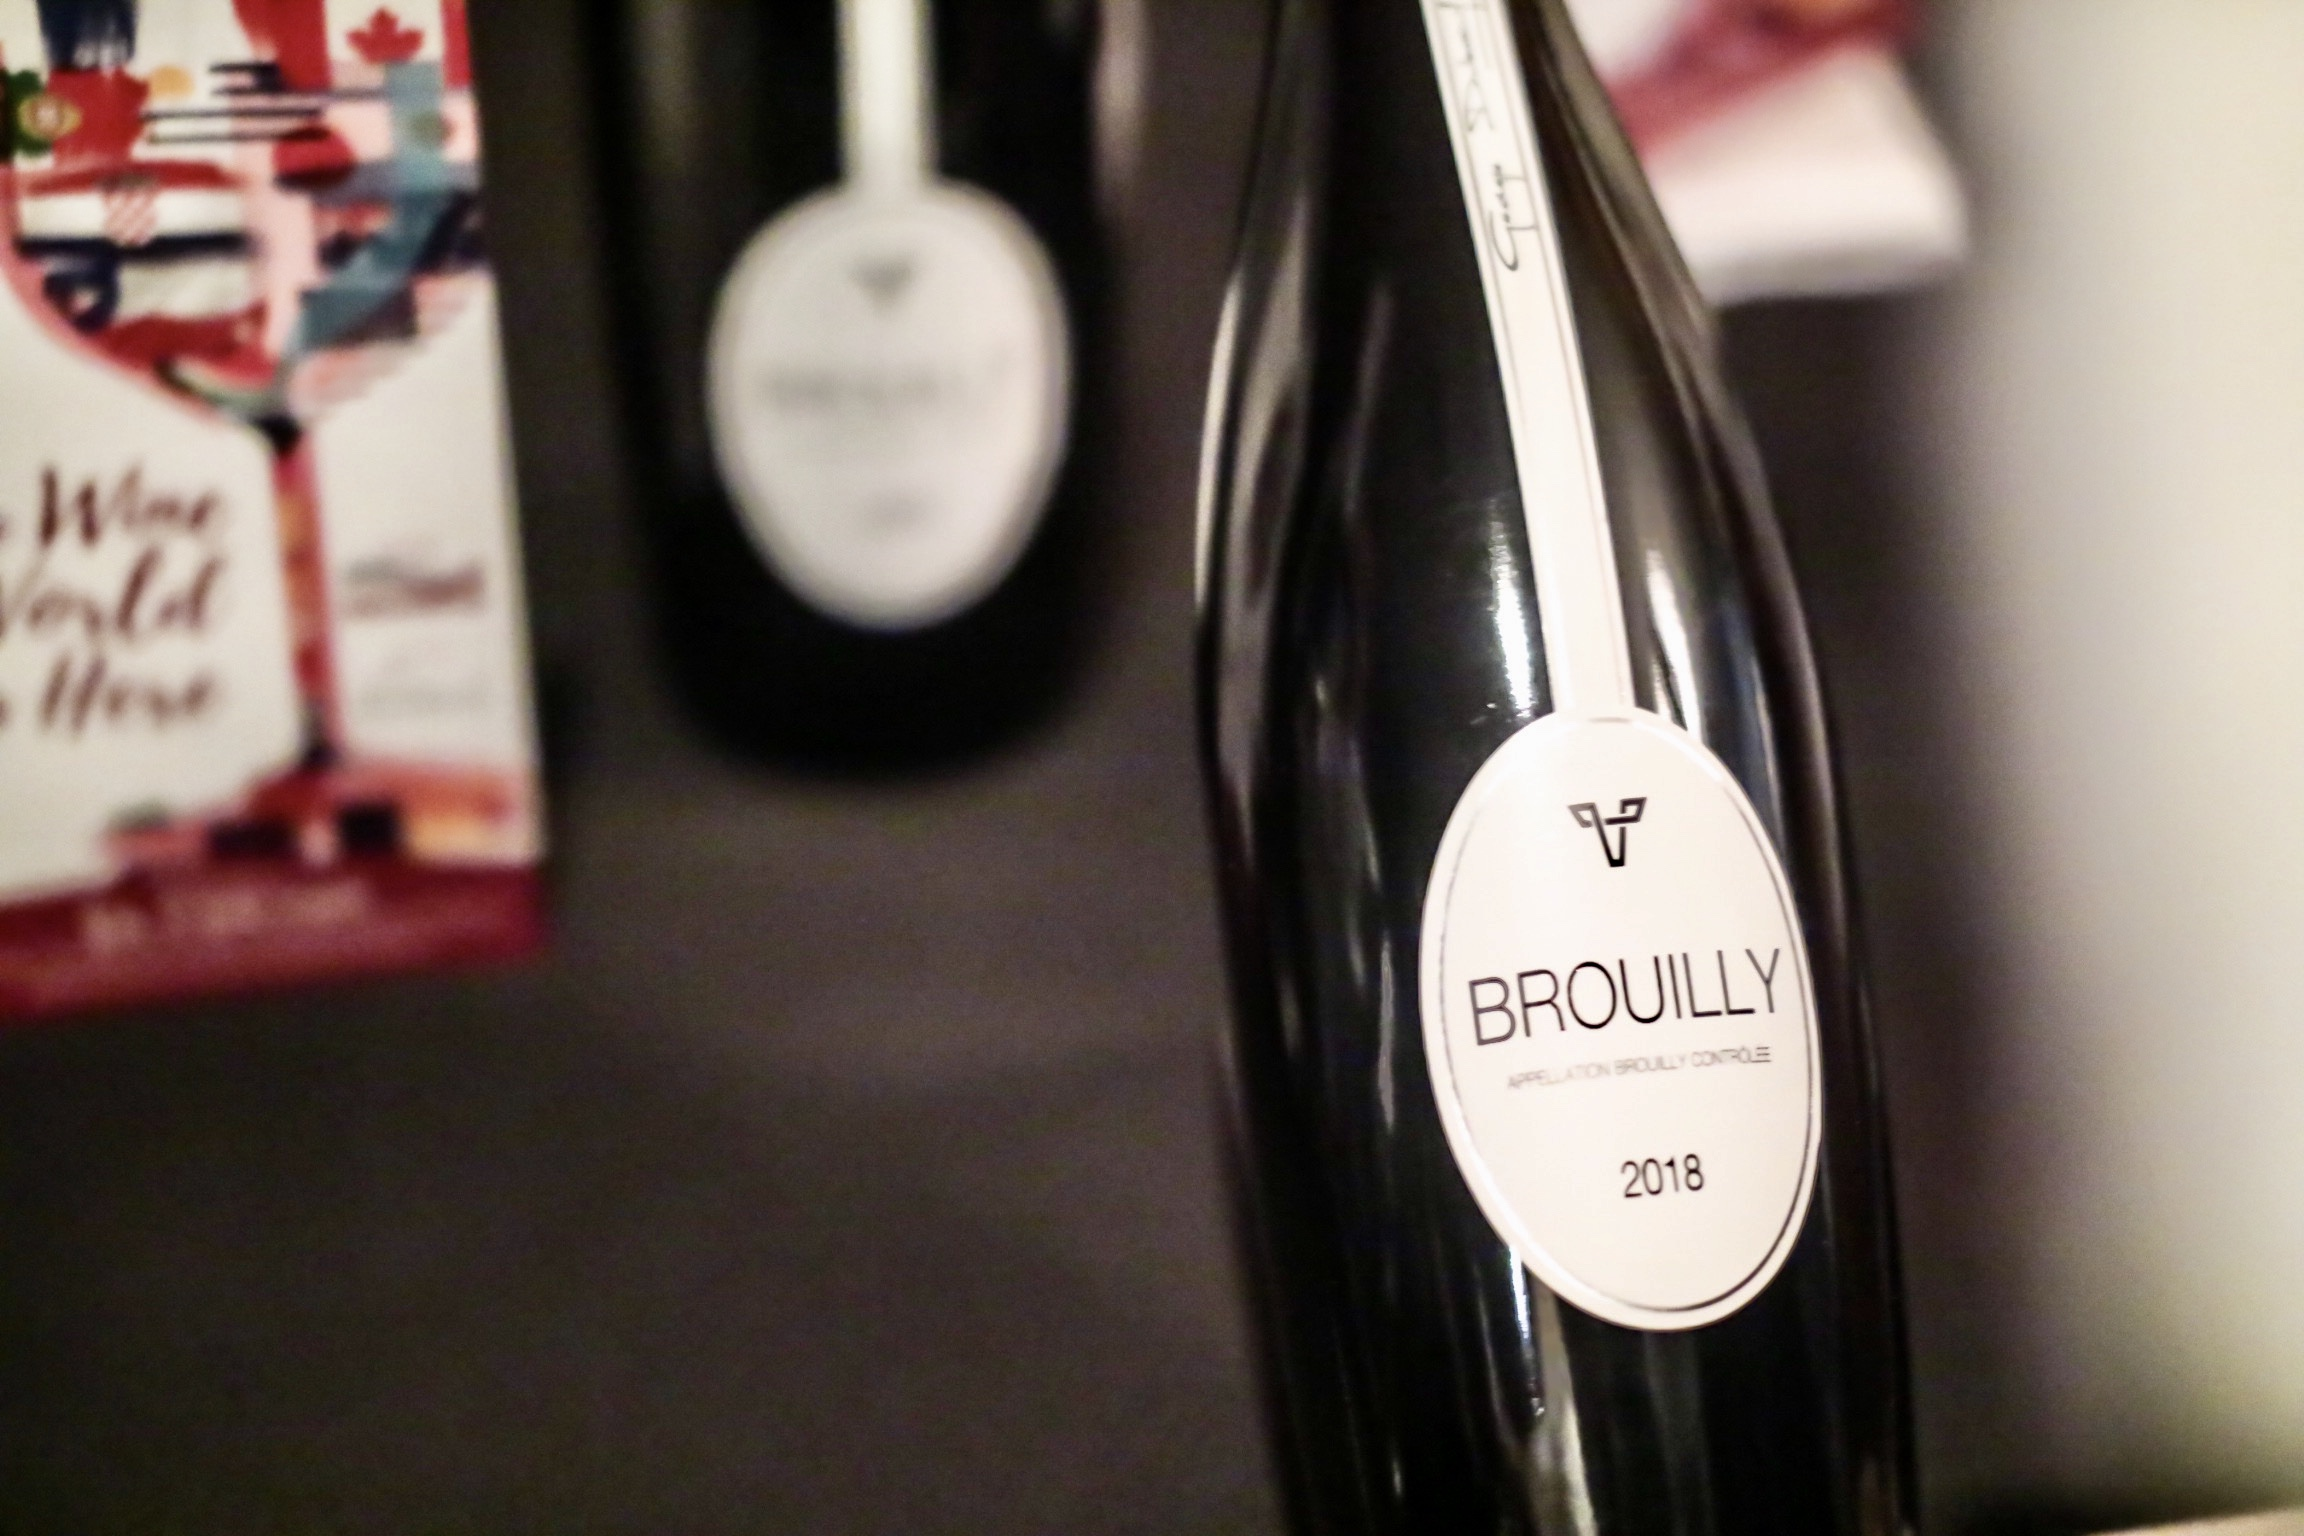 Les Vins Georges Duboeuf Brouilly 2018